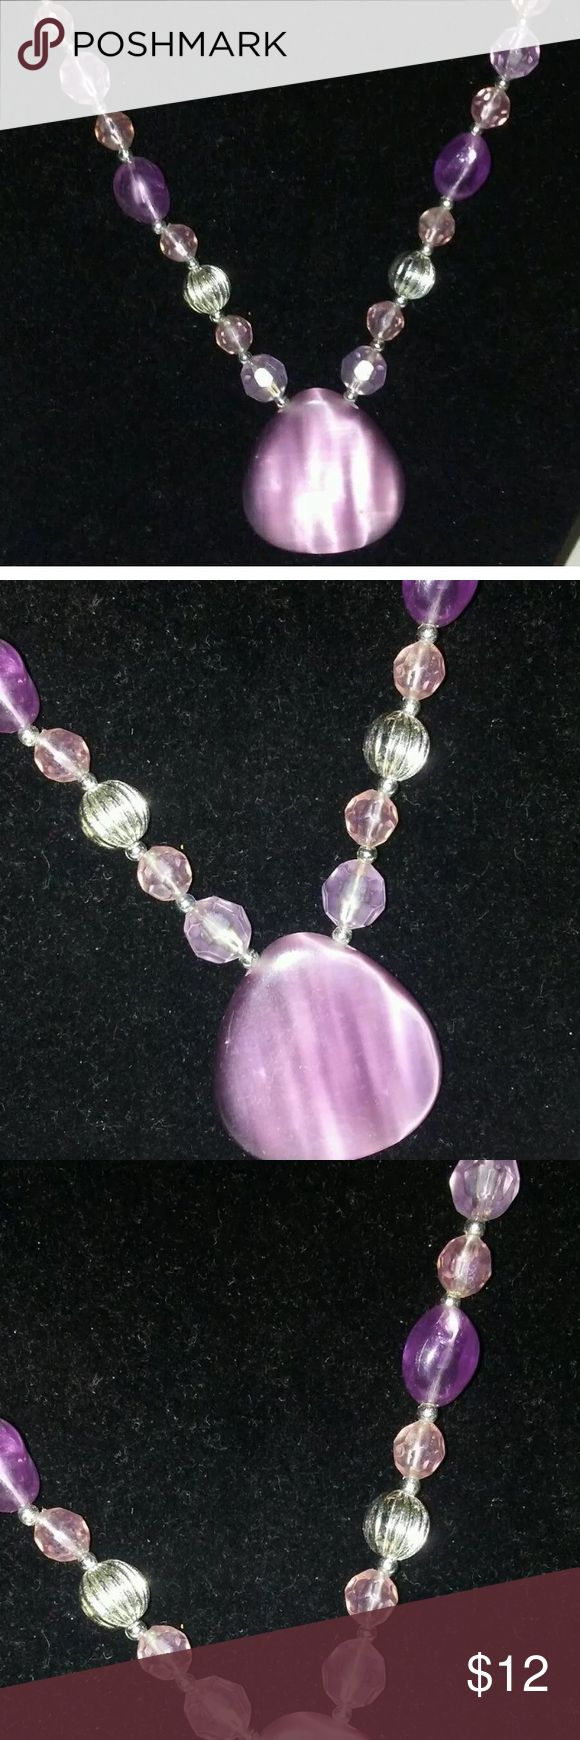 Woman's purple bead necklace with pendant 20-24 inch purple beads An necklace Jewelry Necklaces